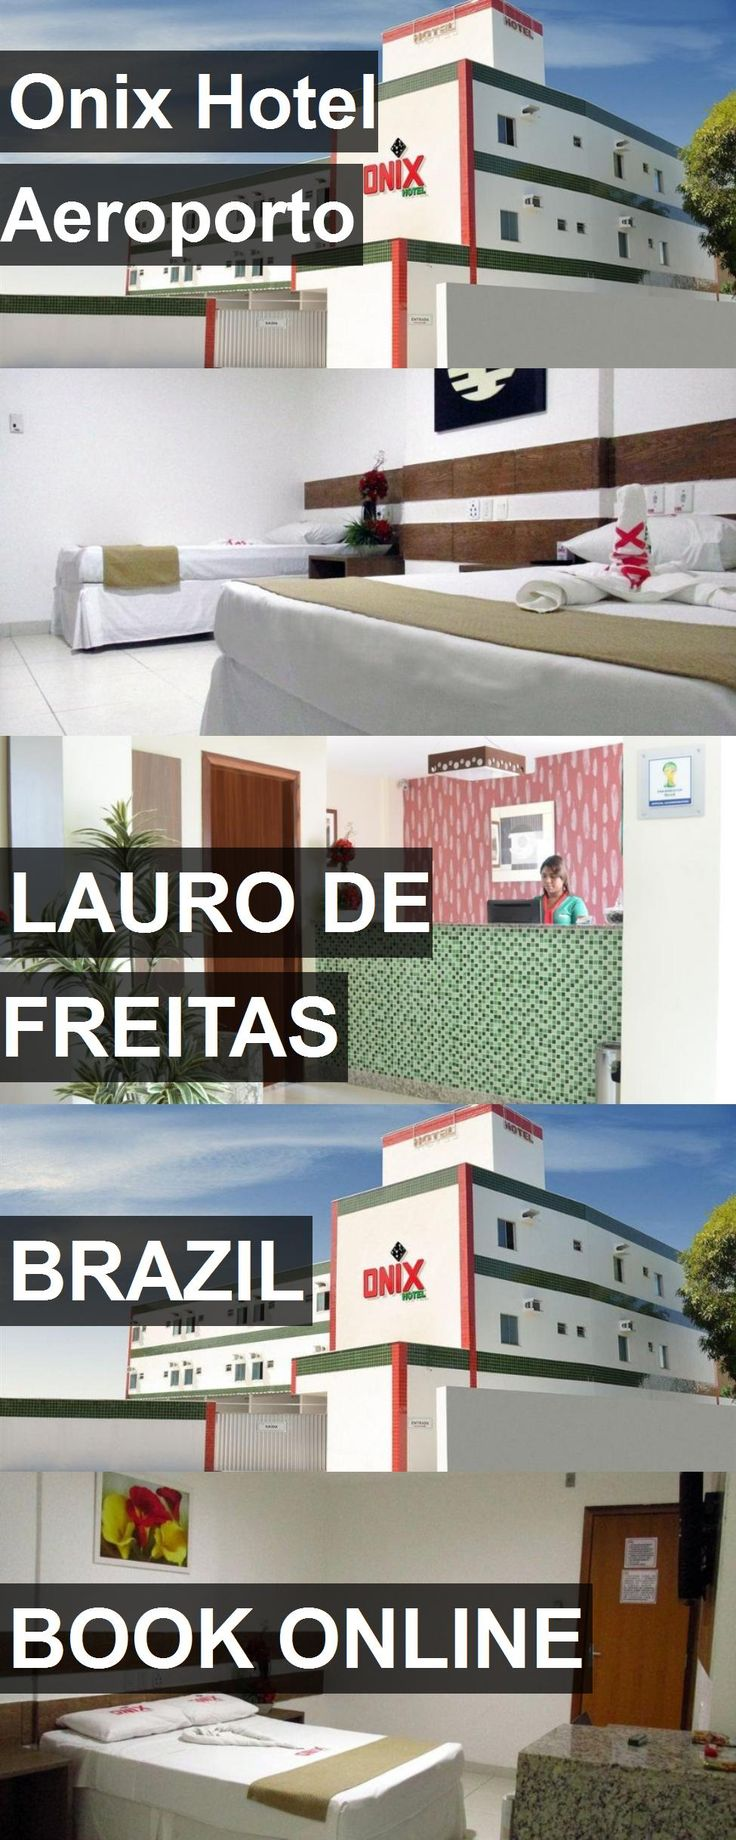 Onix Hotel Aeroporto in Lauro de Freitas, Brazil. For more information, photos, reviews and best prices please follow the link. #Brazil #LaurodeFreitas #travel #vacation #hotel